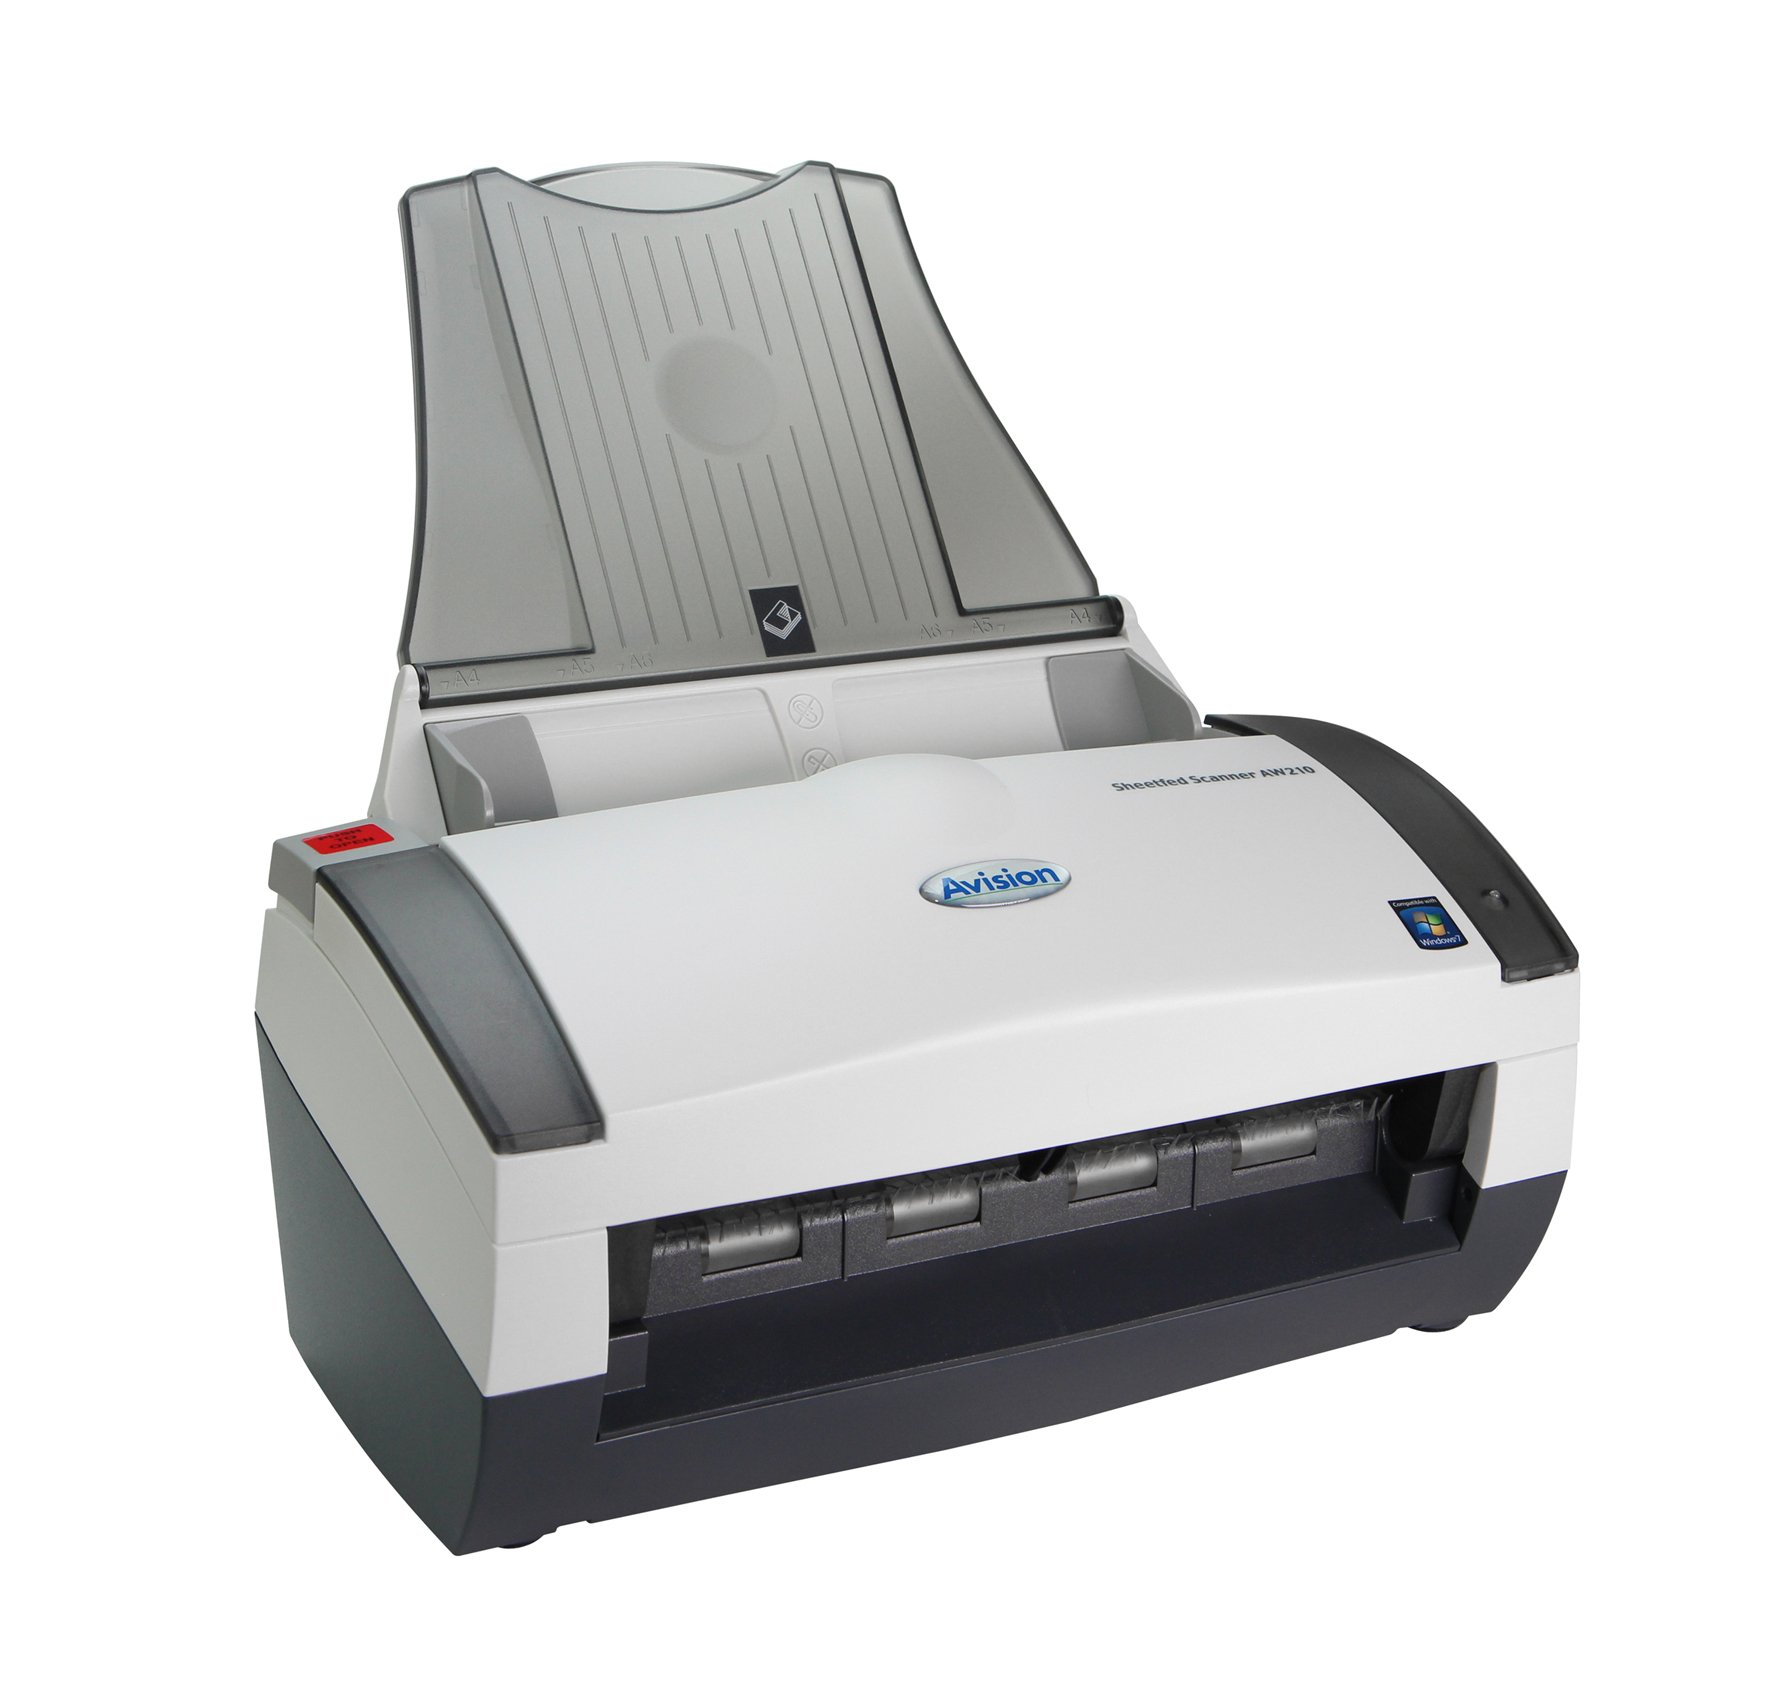 Avision AM3230 Printer Drivers Windows